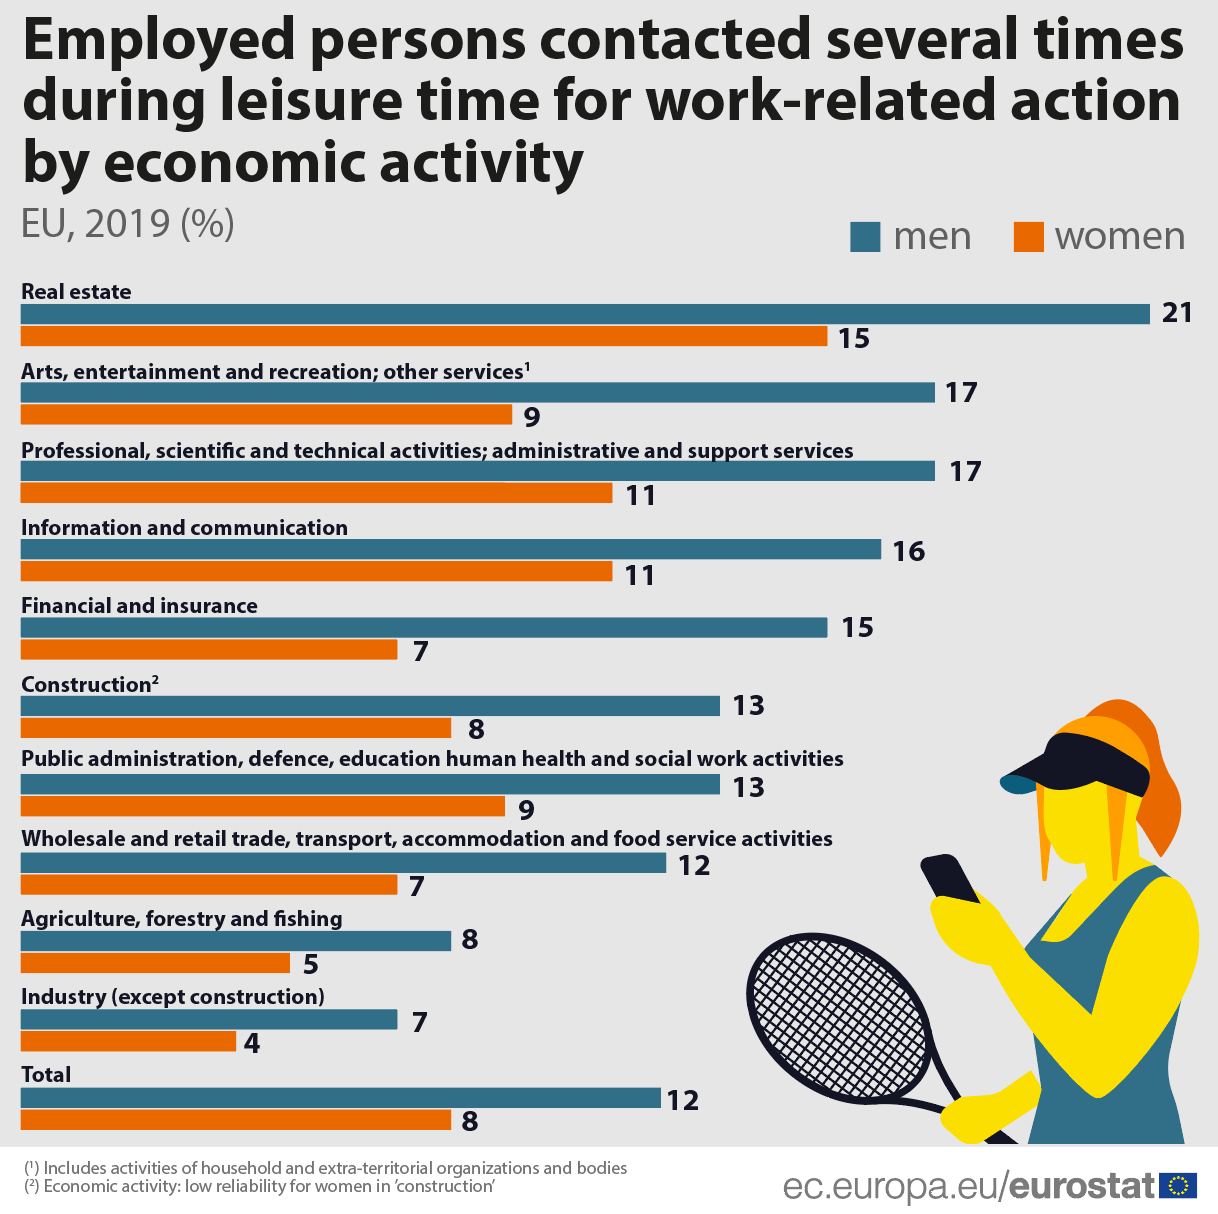 Contacts during leisure time by economic activity, 2019